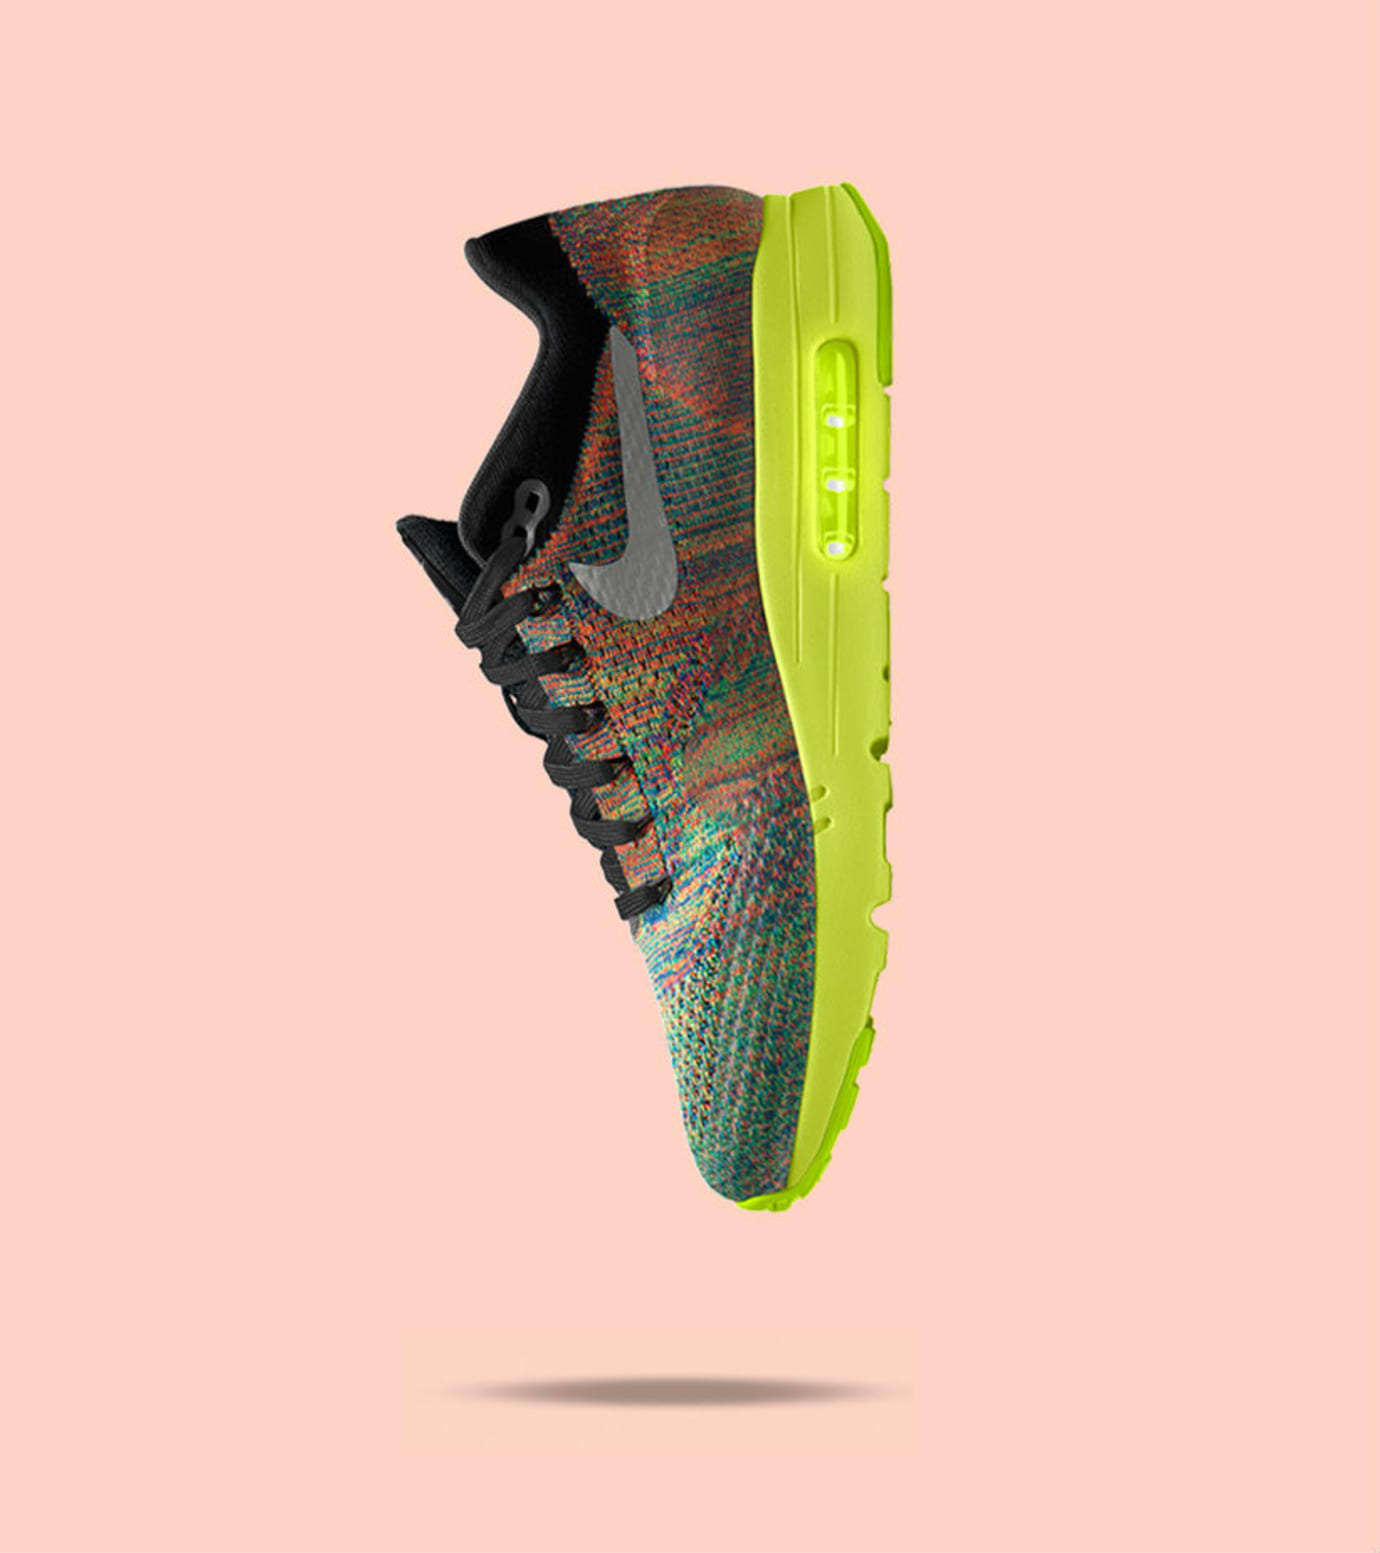 Nike iD Air Max Day 2017 (2)